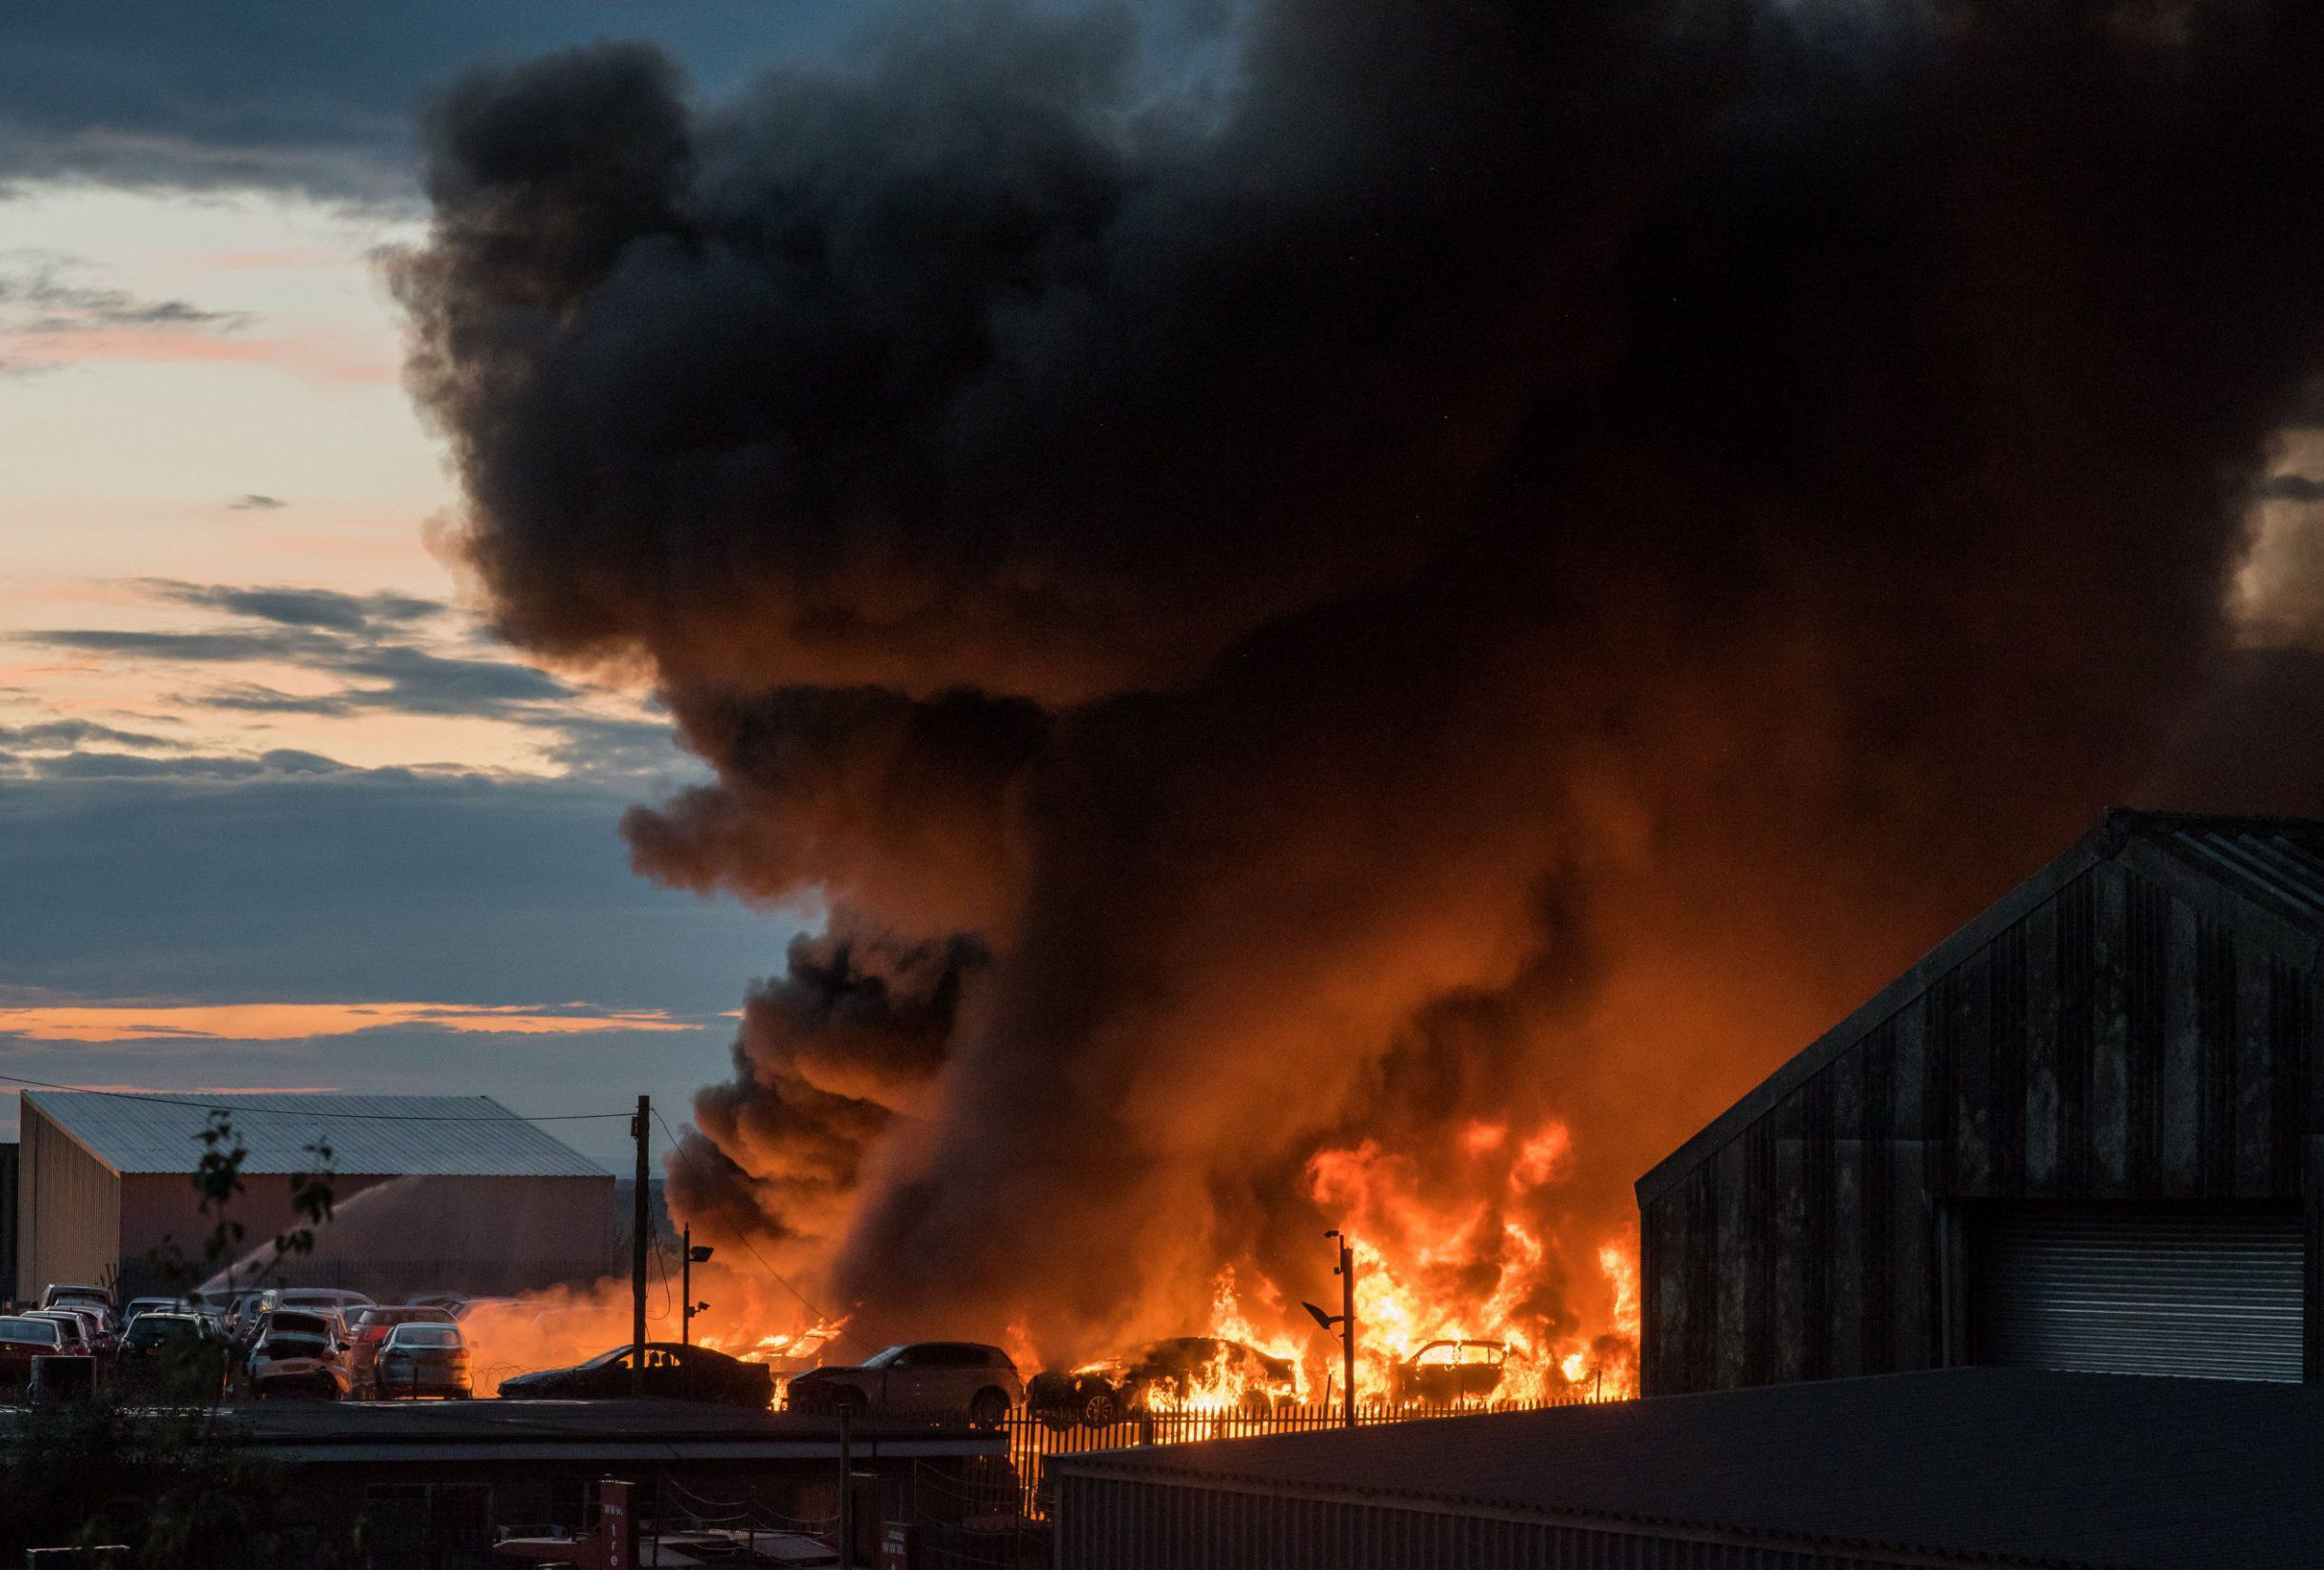 Firefighters battle huge blaze at a scrapyard involving 179 cars